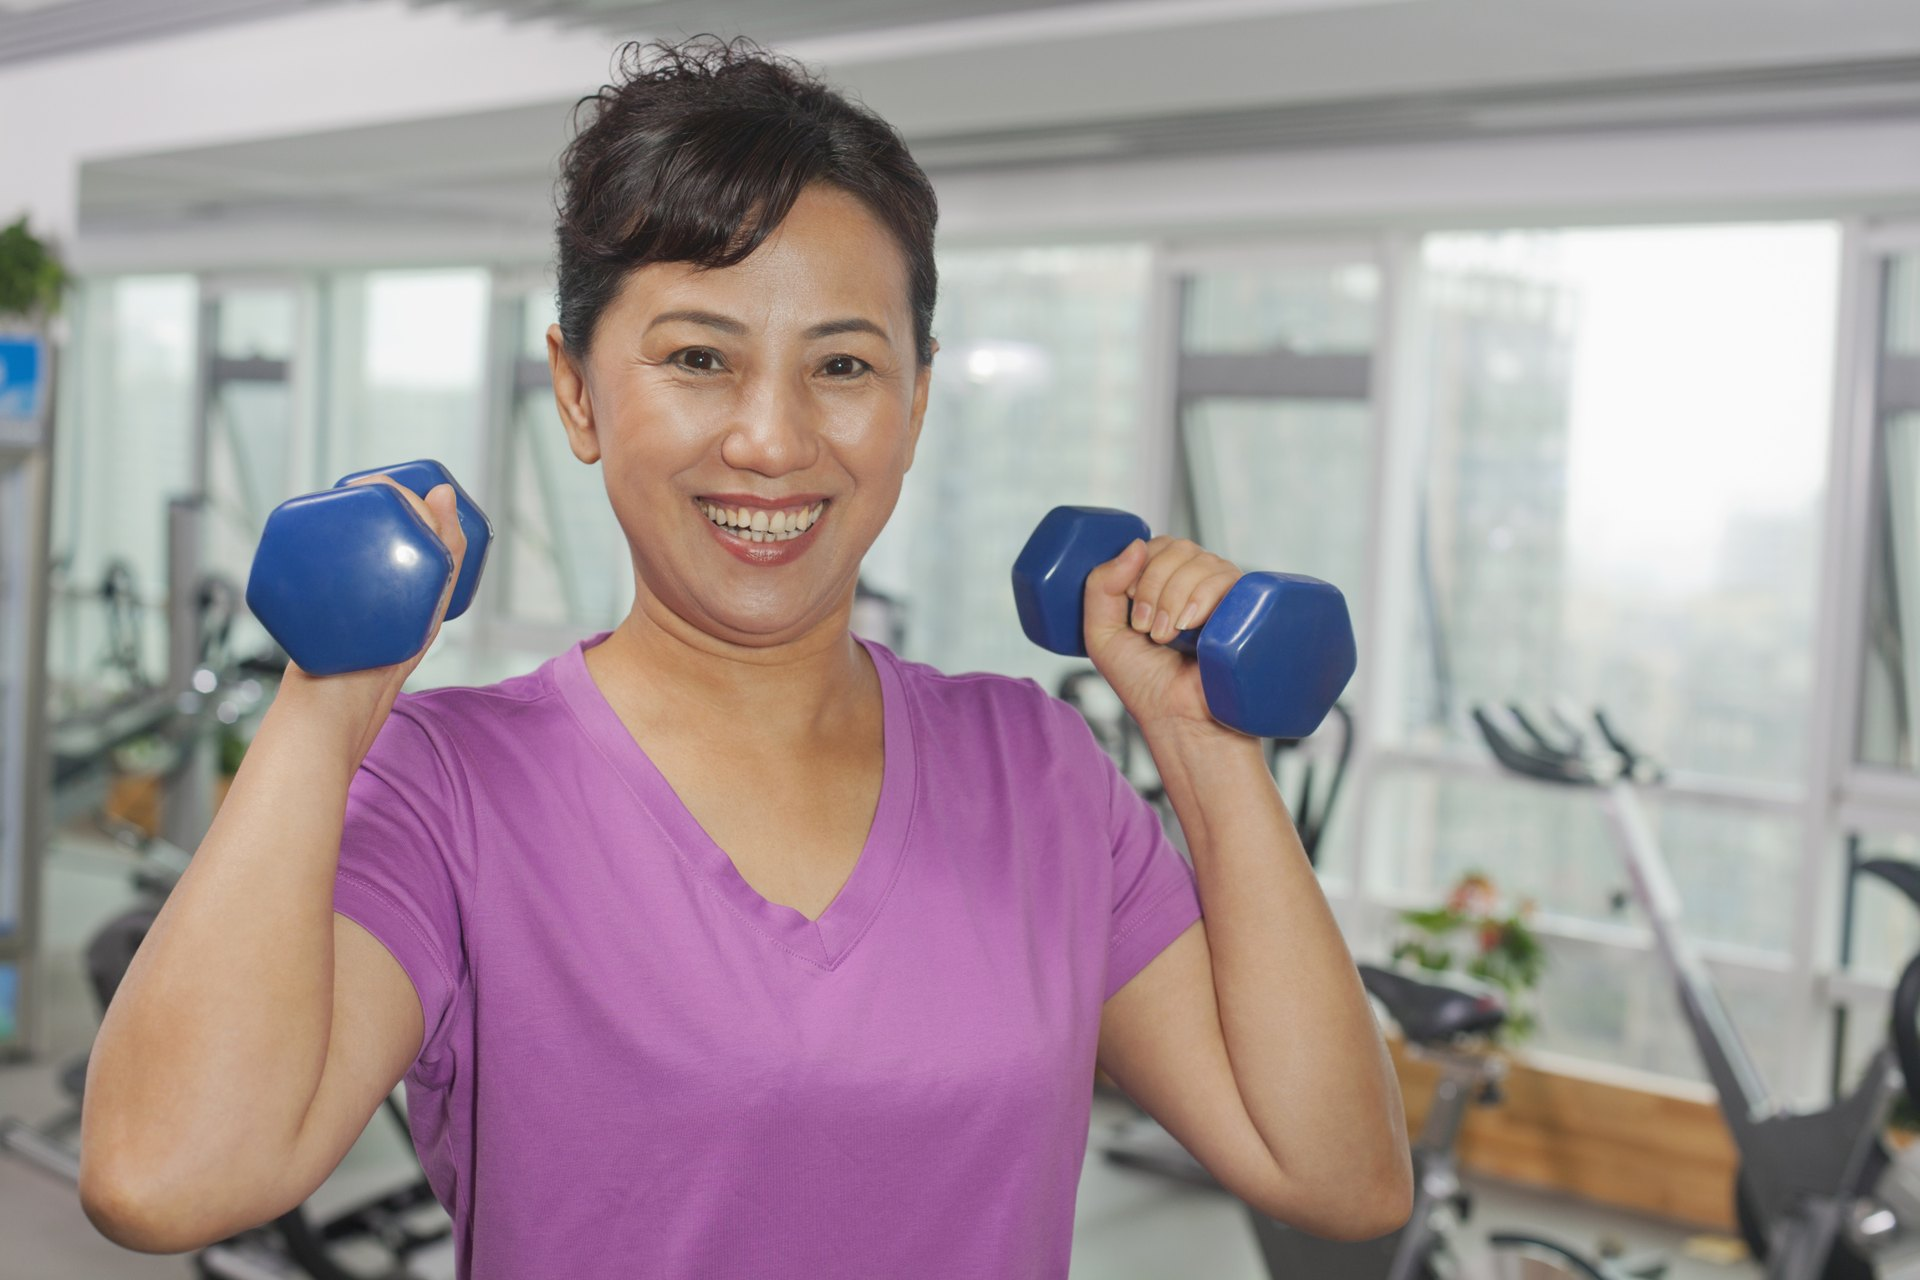 The ideal weight range for women livestrong nvjuhfo Images